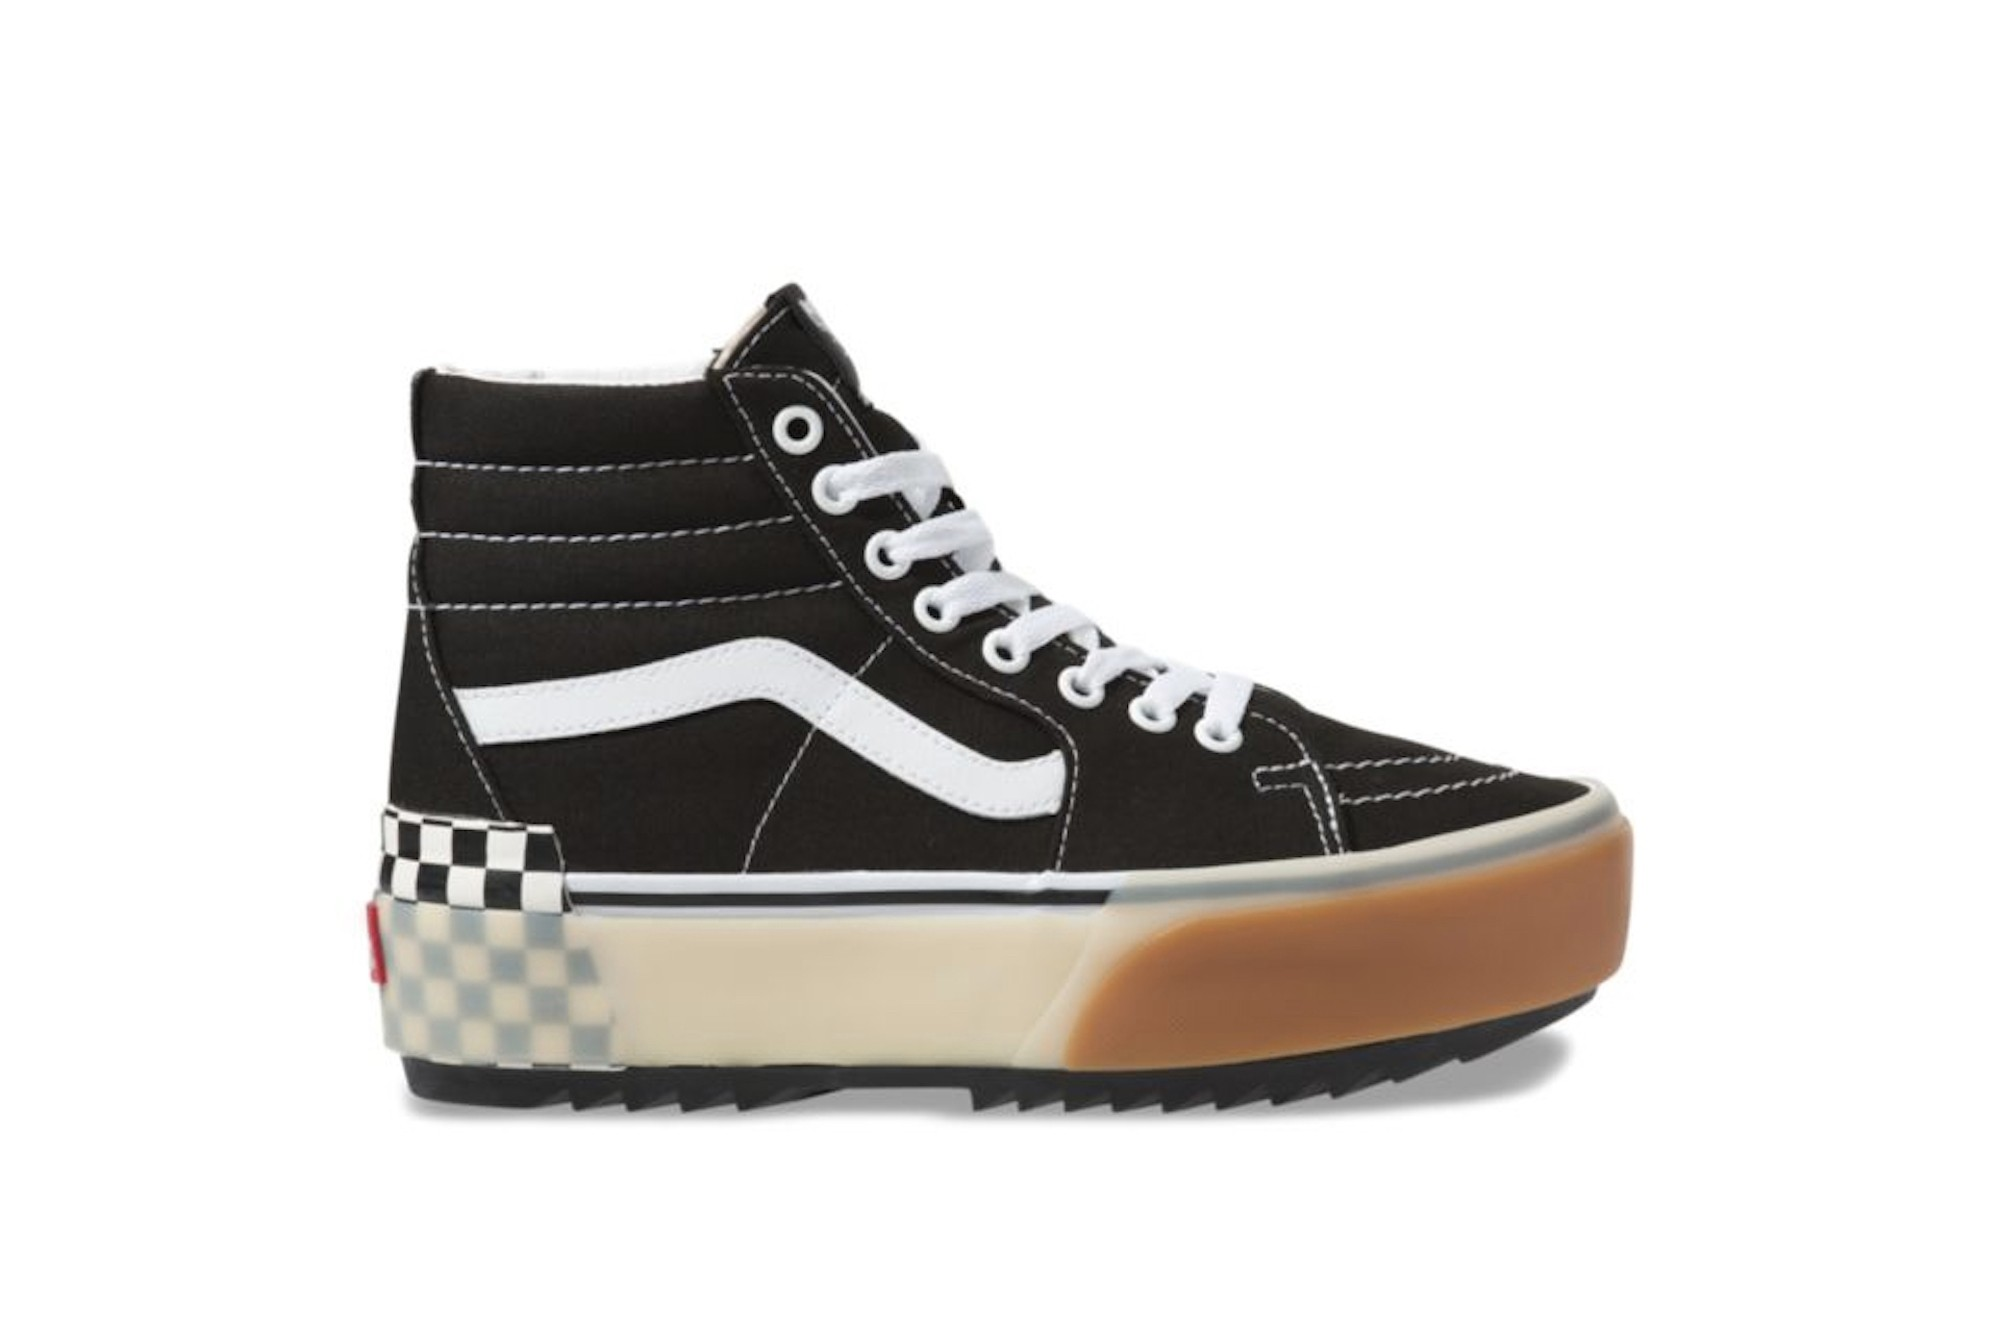 the and Era Platform Gave Just Sneaker Hi Vans Sk8 a Upgrade 8PnO0wkNX